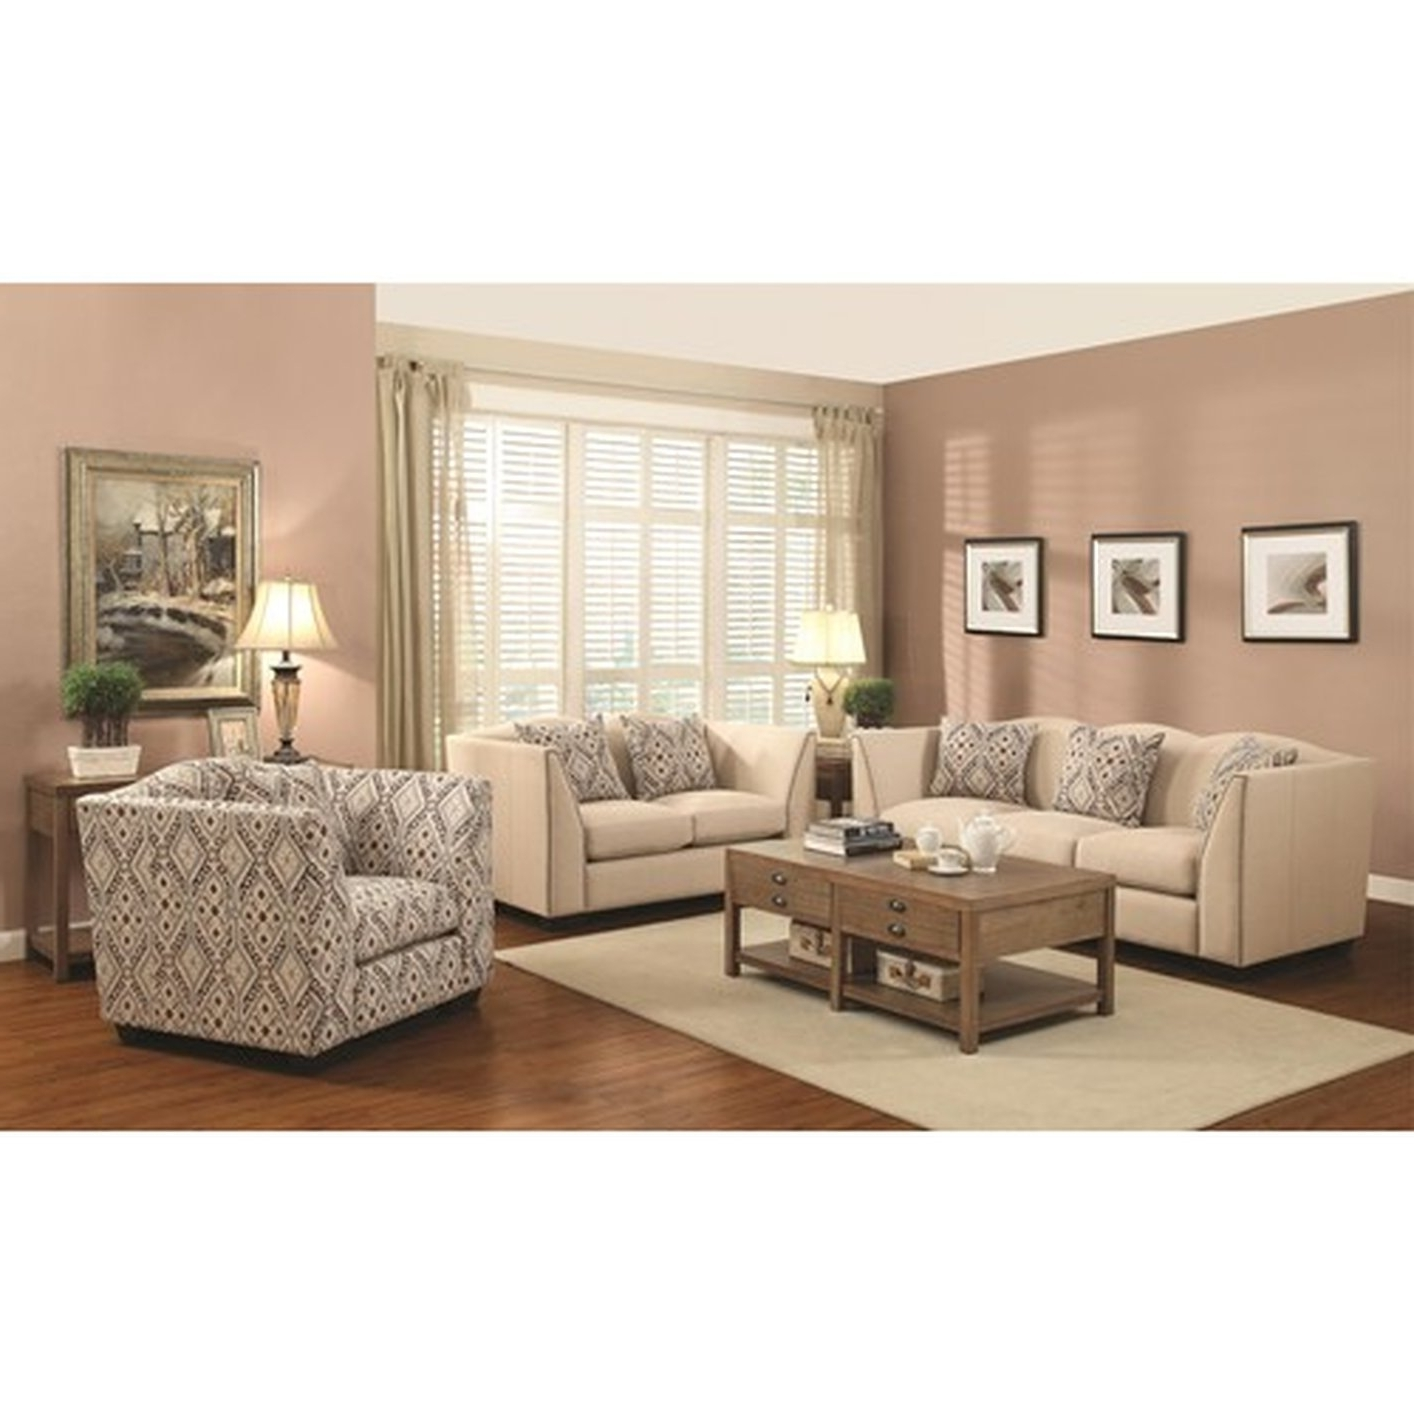 Sofa And Accent Chair Sets Intended For Preferred Siana Beige Fabric Accent Chair – Steal A Sofa Furniture Outlet (View 10 of 15)